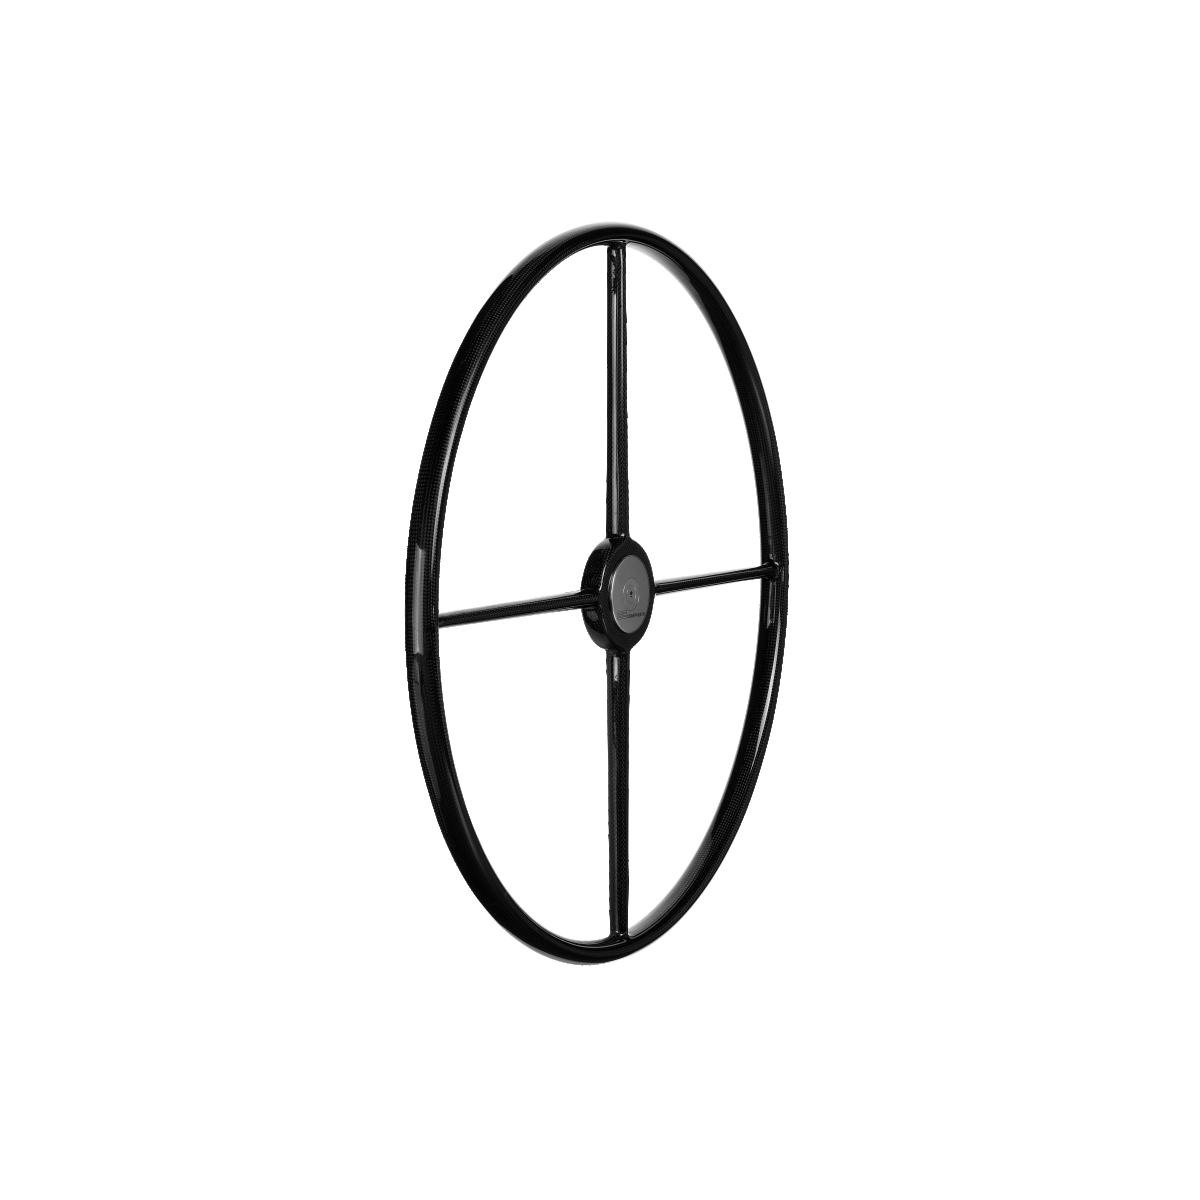 GFC Steering Wheel, classic 4-spoke